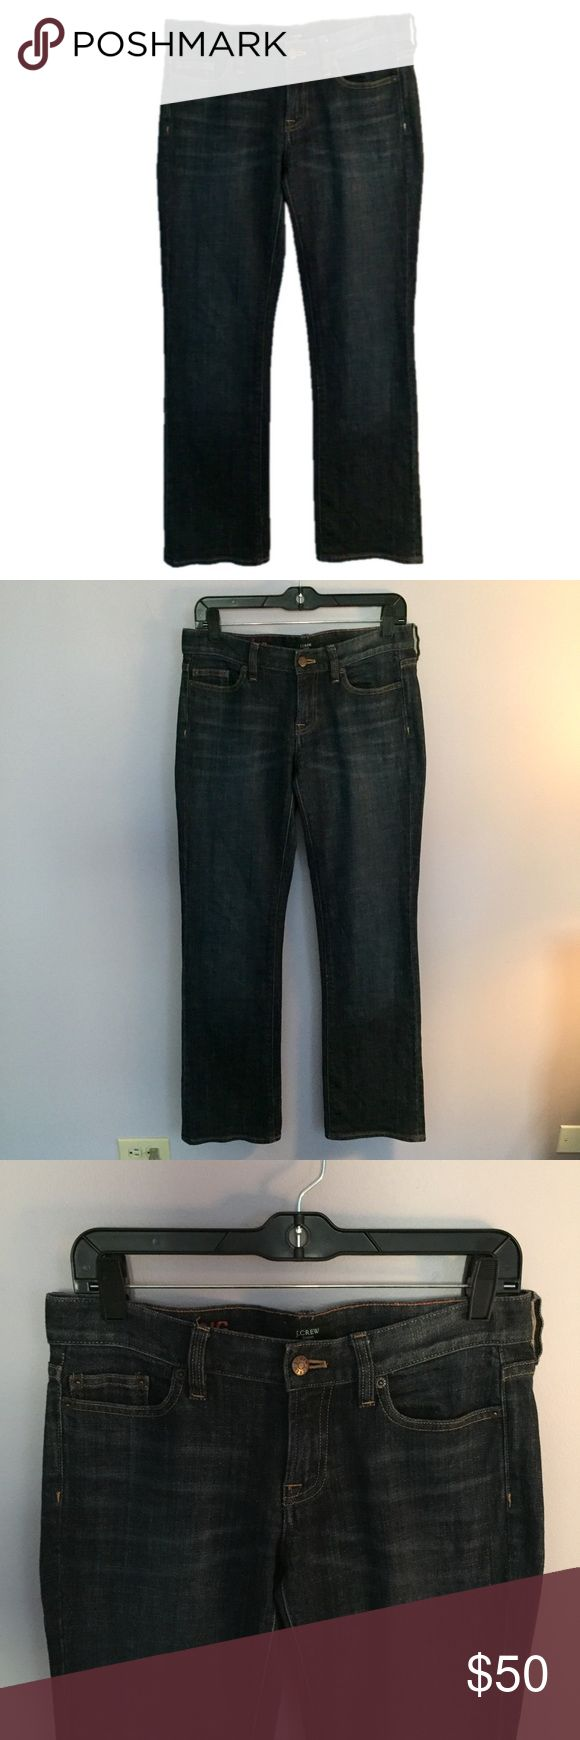 """J. Crew Hipslung Dark Blue Jeans J. Crew Hipslung Dark Blue Jeans. NOT SKINNY JEANS. THERE IS ONE SCRATCH ON THE BACK NEAR THE POCKET. SEE PICTURE 4. Size 28 Regular. Equivalent to a size 6. Waist 31"""" Hips 36.5"""" Inseam 31.25"""" Excellent Condition! Let me know if you have any questions! ✅ I LOVE OFFERS ✅ 💜INSTAGRAM: @ocaputostyle J. Crew Jeans"""